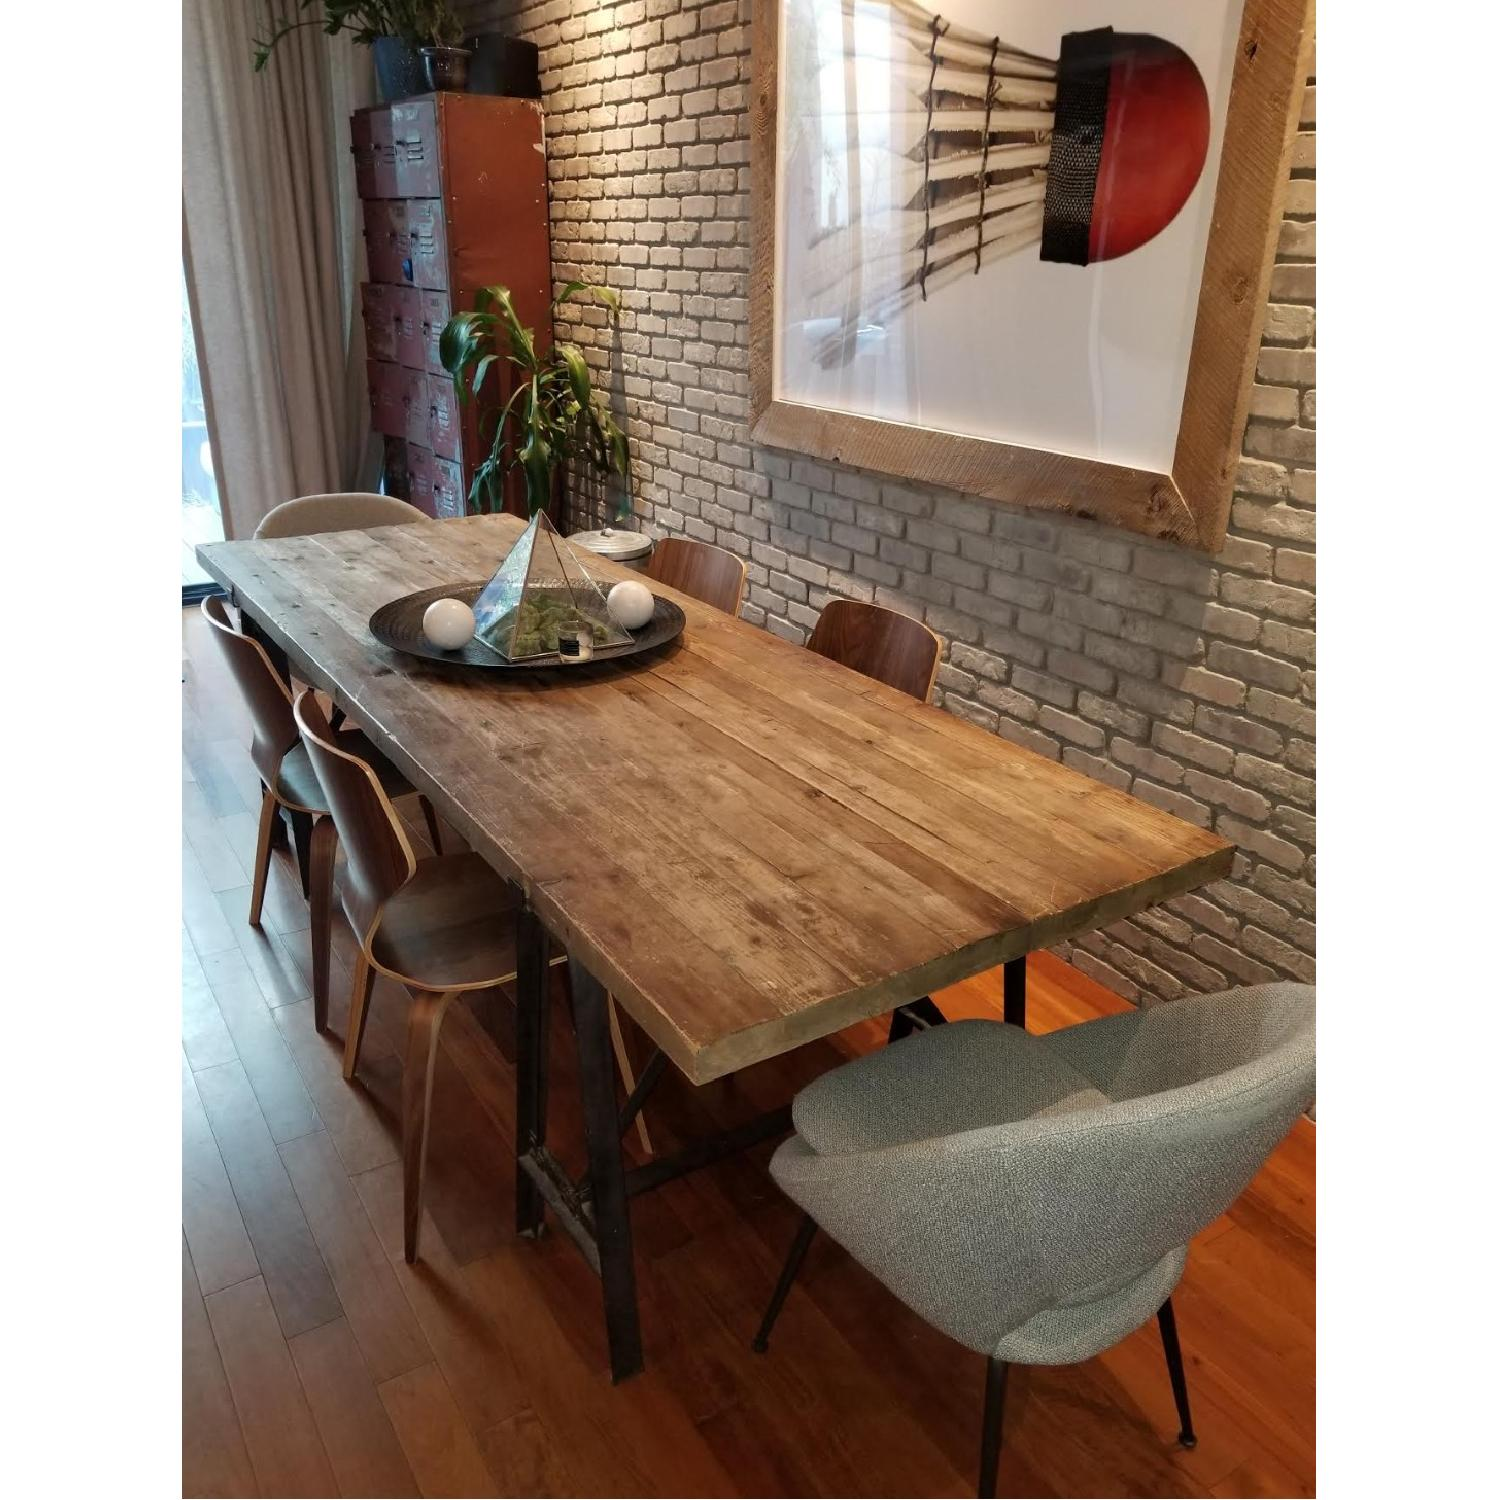 Reclaimed Wood Dining Table w/ Wrought Iron Legs-1